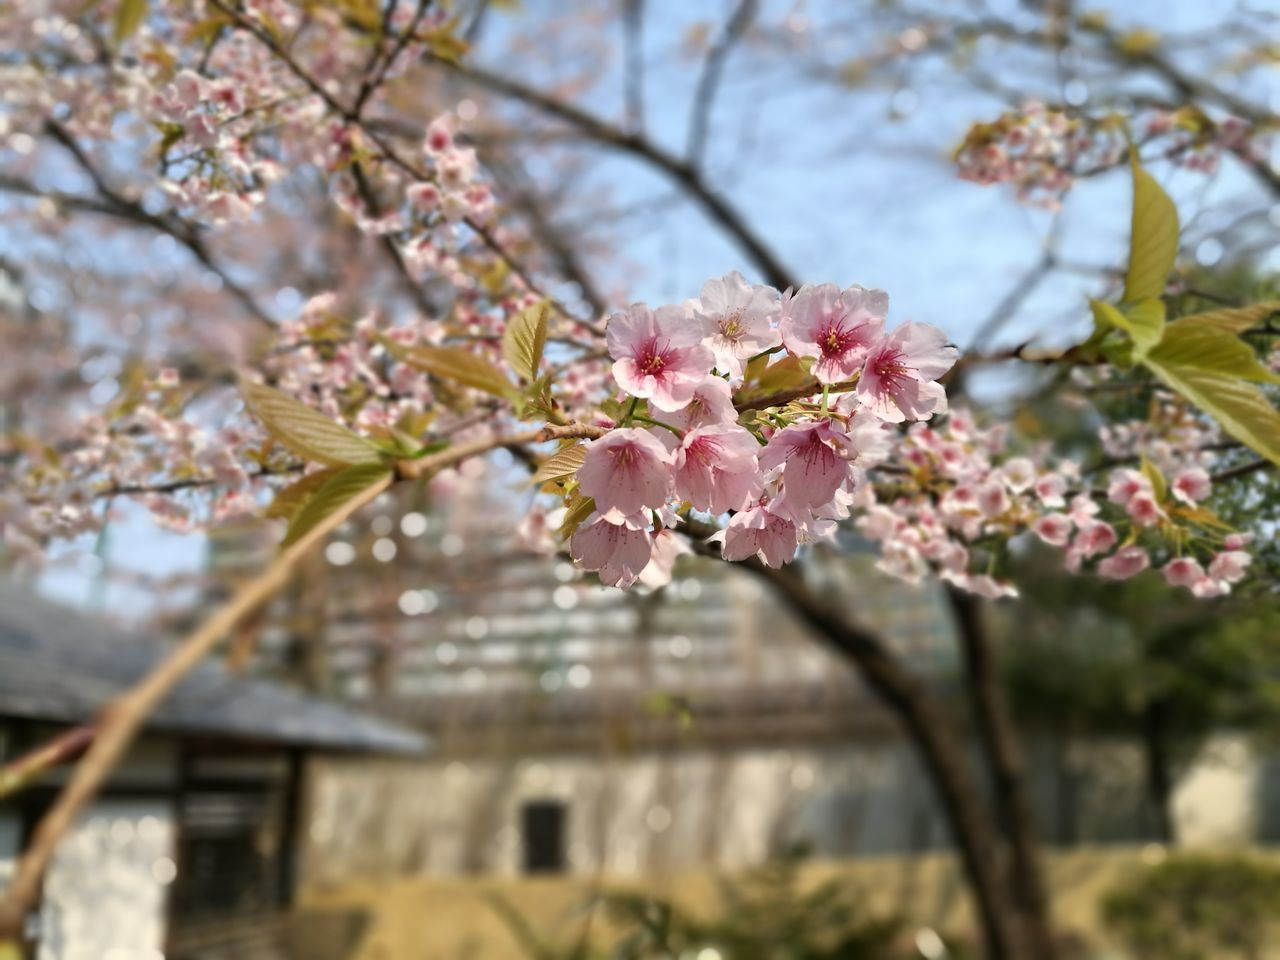 flower, tree, fragility, beauty in nature, cherry blossom, growth, branch, nature, blossom, springtime, pink color, freshness, cherry tree, apple blossom, no people, petal, day, orchard, botany, focus on foreground, outdoors, low angle view, close-up, flower head, blooming, plum blossom, building exterior, architecture, sky